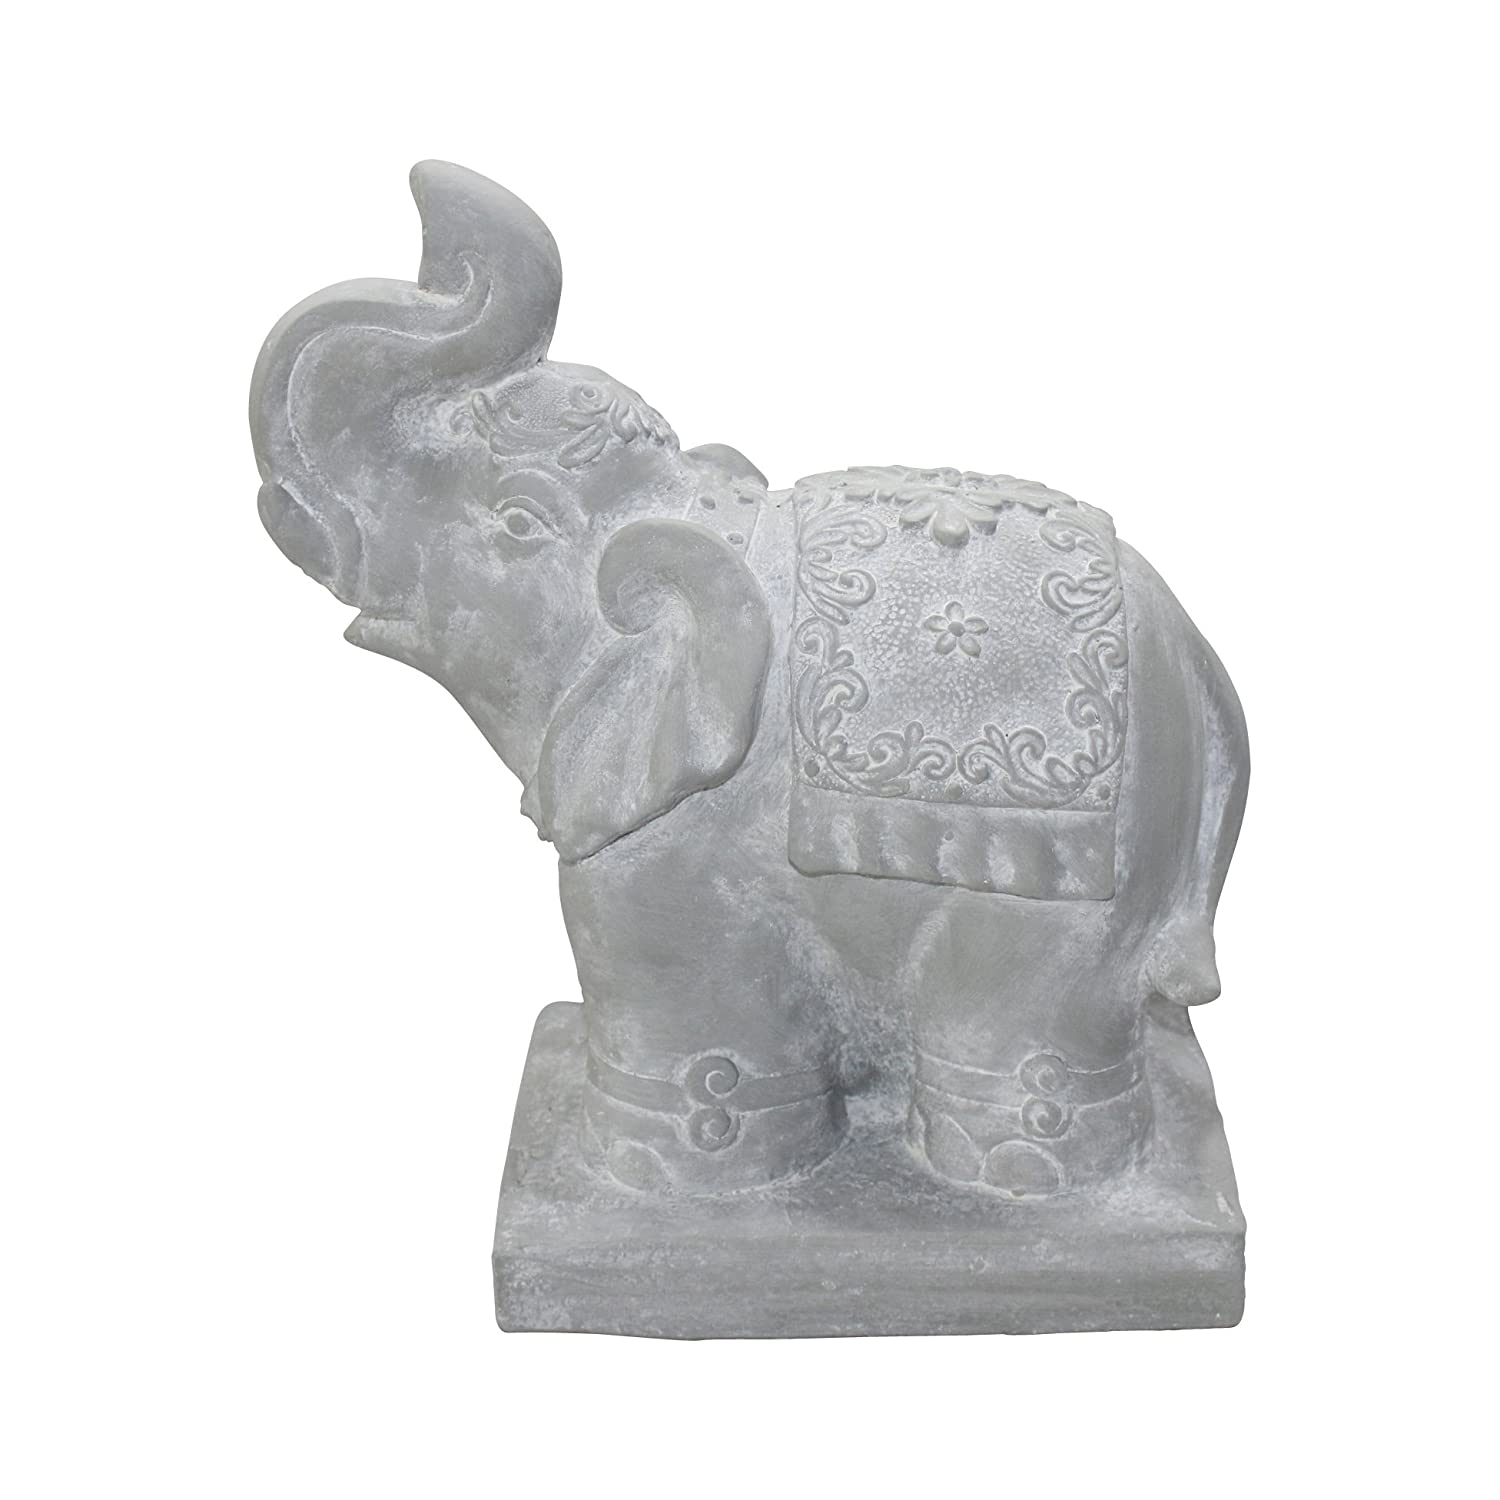 Amazon.com: Homea 5dej1326bc Statue Elephant Drawing Chalk 40 x 33 x 18 cm White: Kitchen & Dining